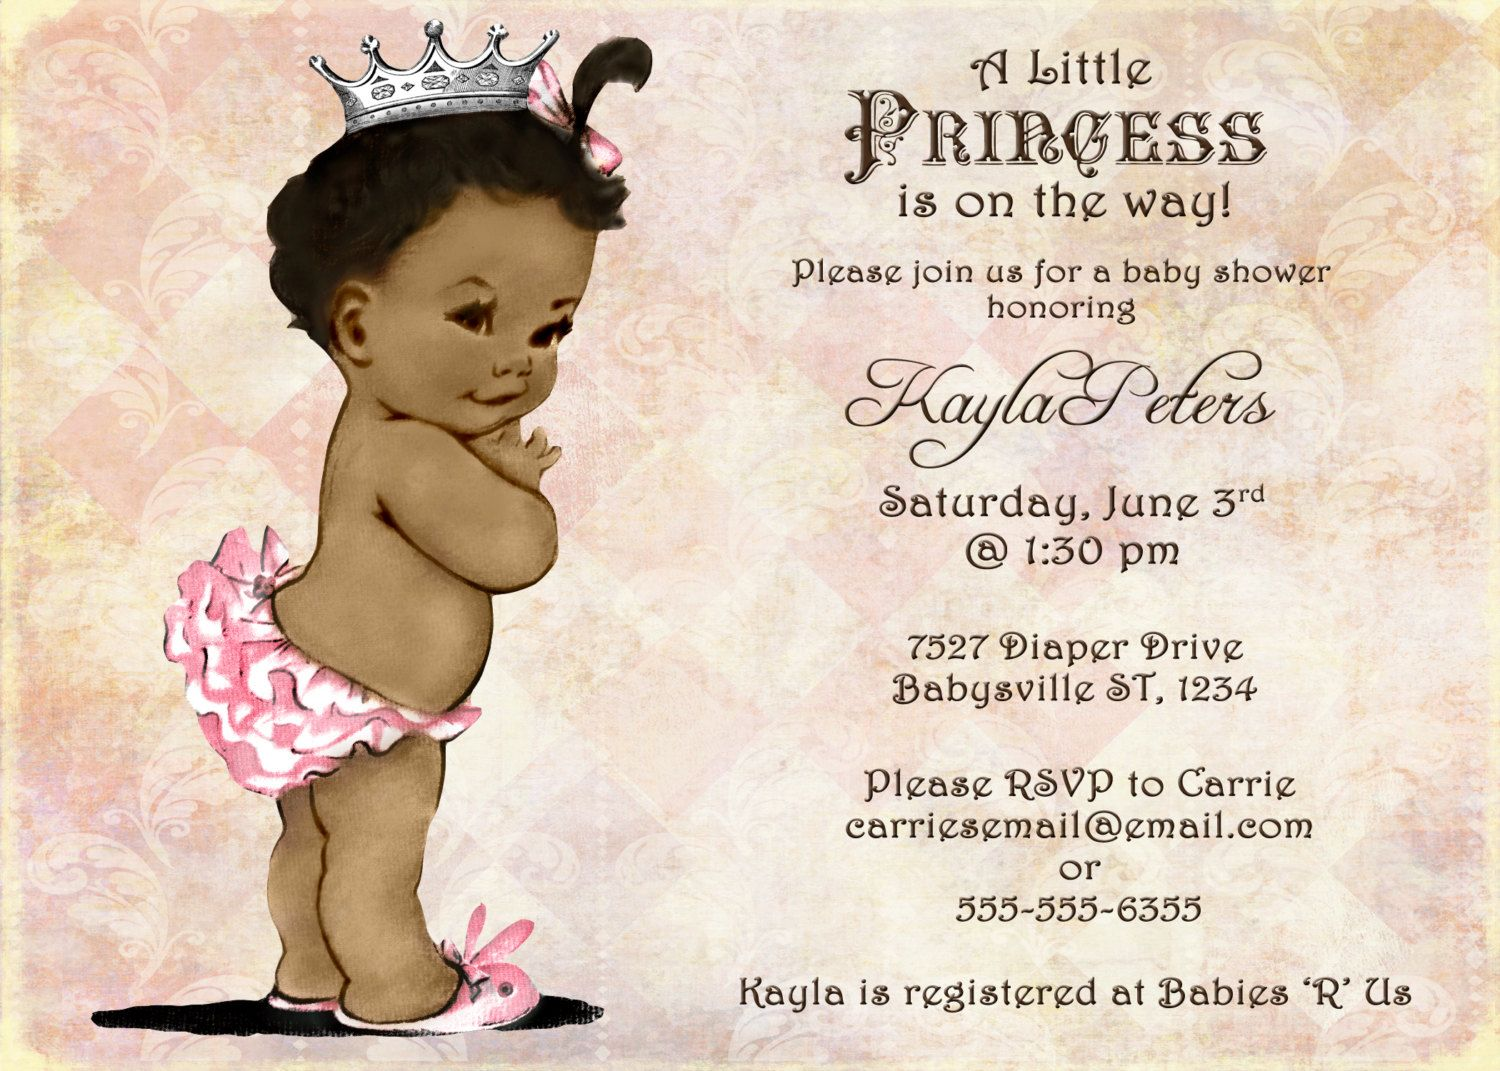 african american baby shower invitation for girl - princess, Baby shower invitations